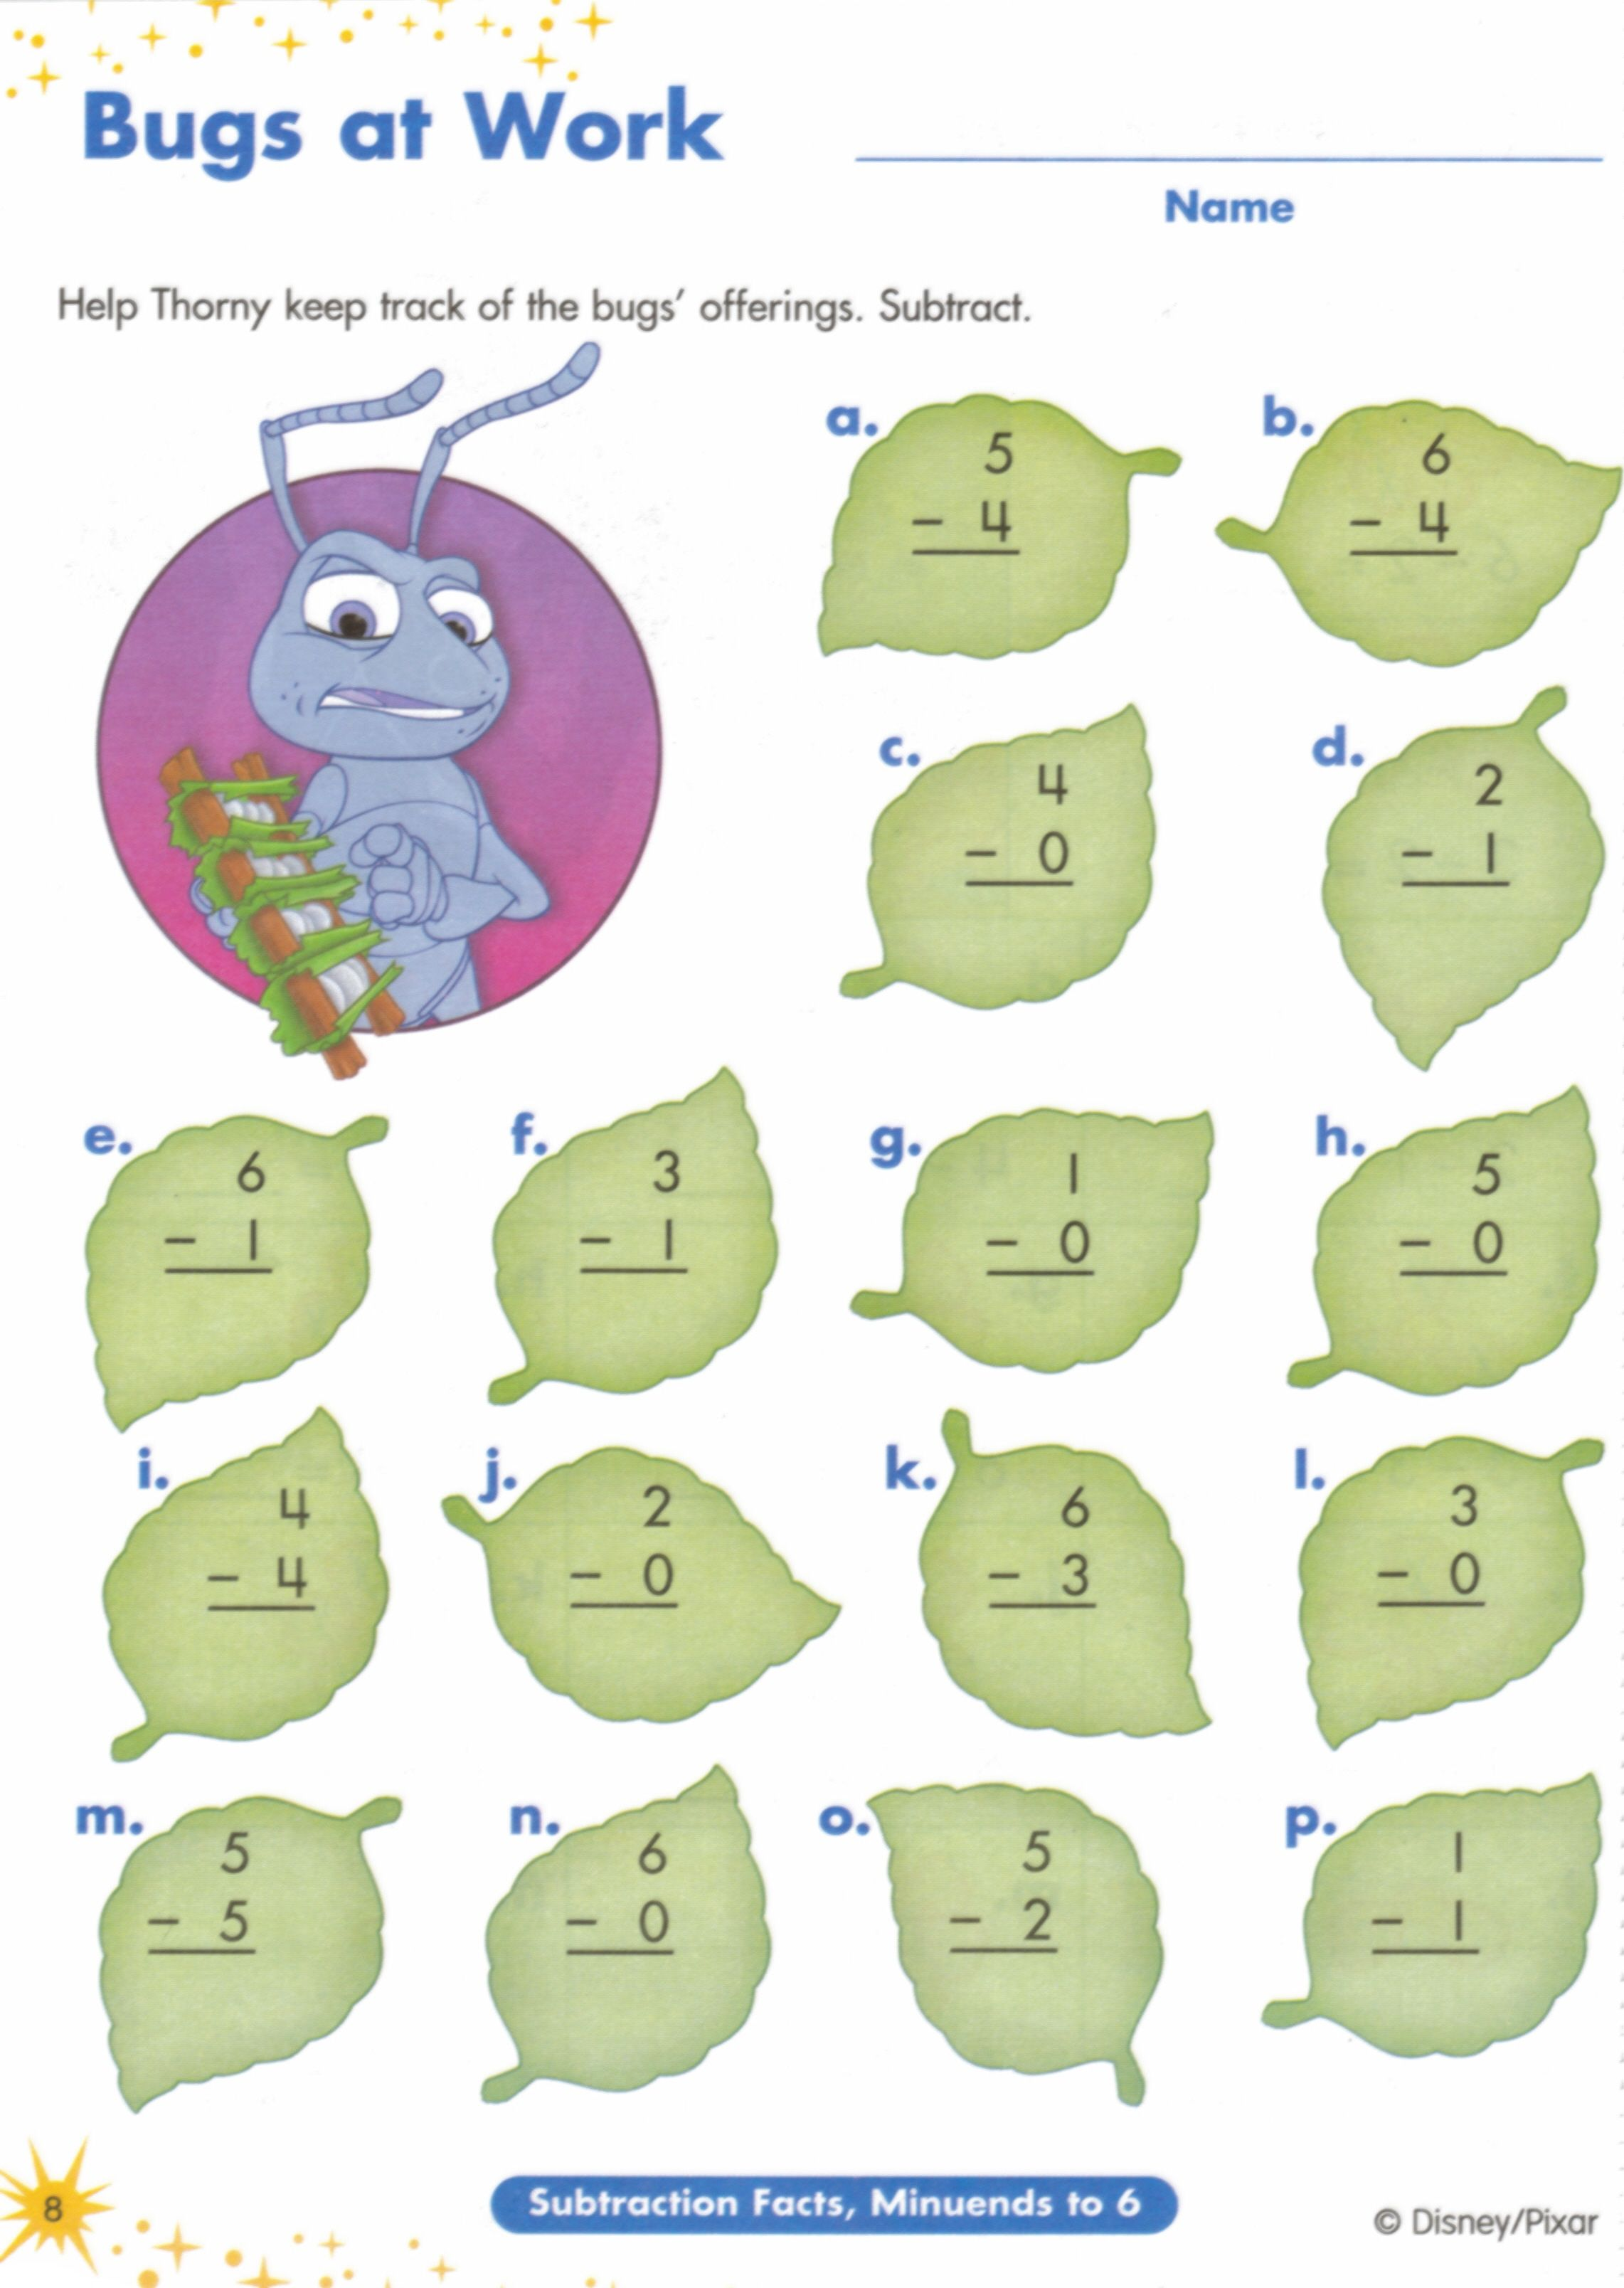 Proatmealus  Surprising  Images About Worksheets On Pinterest  Fun Facts For Kids  With Gorgeous  Images About Worksheets On Pinterest  Fun Facts For Kids Earth Day Worksheets And Jungles With Enchanting Reading Comprehension Worksheets With Questions Also Ancient History Worksheets In Addition Fraction Printable Worksheets And Cross Section Of An Animal Cell Worksheet As Well As Chunking Words Worksheet Additionally Mutation Worksheets From Pinterestcom With Proatmealus  Gorgeous  Images About Worksheets On Pinterest  Fun Facts For Kids  With Enchanting  Images About Worksheets On Pinterest  Fun Facts For Kids Earth Day Worksheets And Jungles And Surprising Reading Comprehension Worksheets With Questions Also Ancient History Worksheets In Addition Fraction Printable Worksheets From Pinterestcom